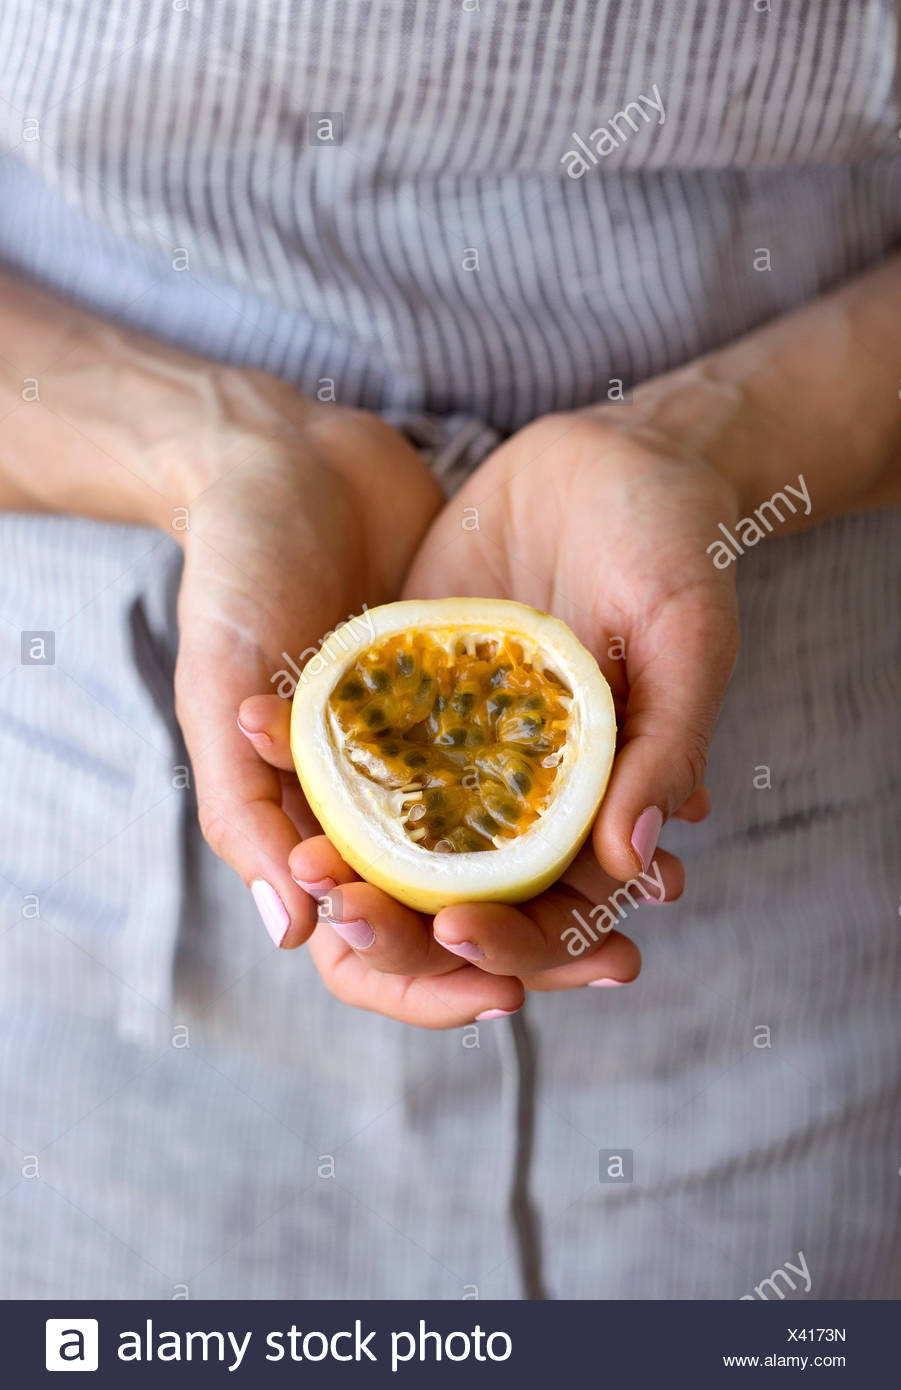 A woman holding half of a freshly cut passion fruit in her hands. Stock Photo